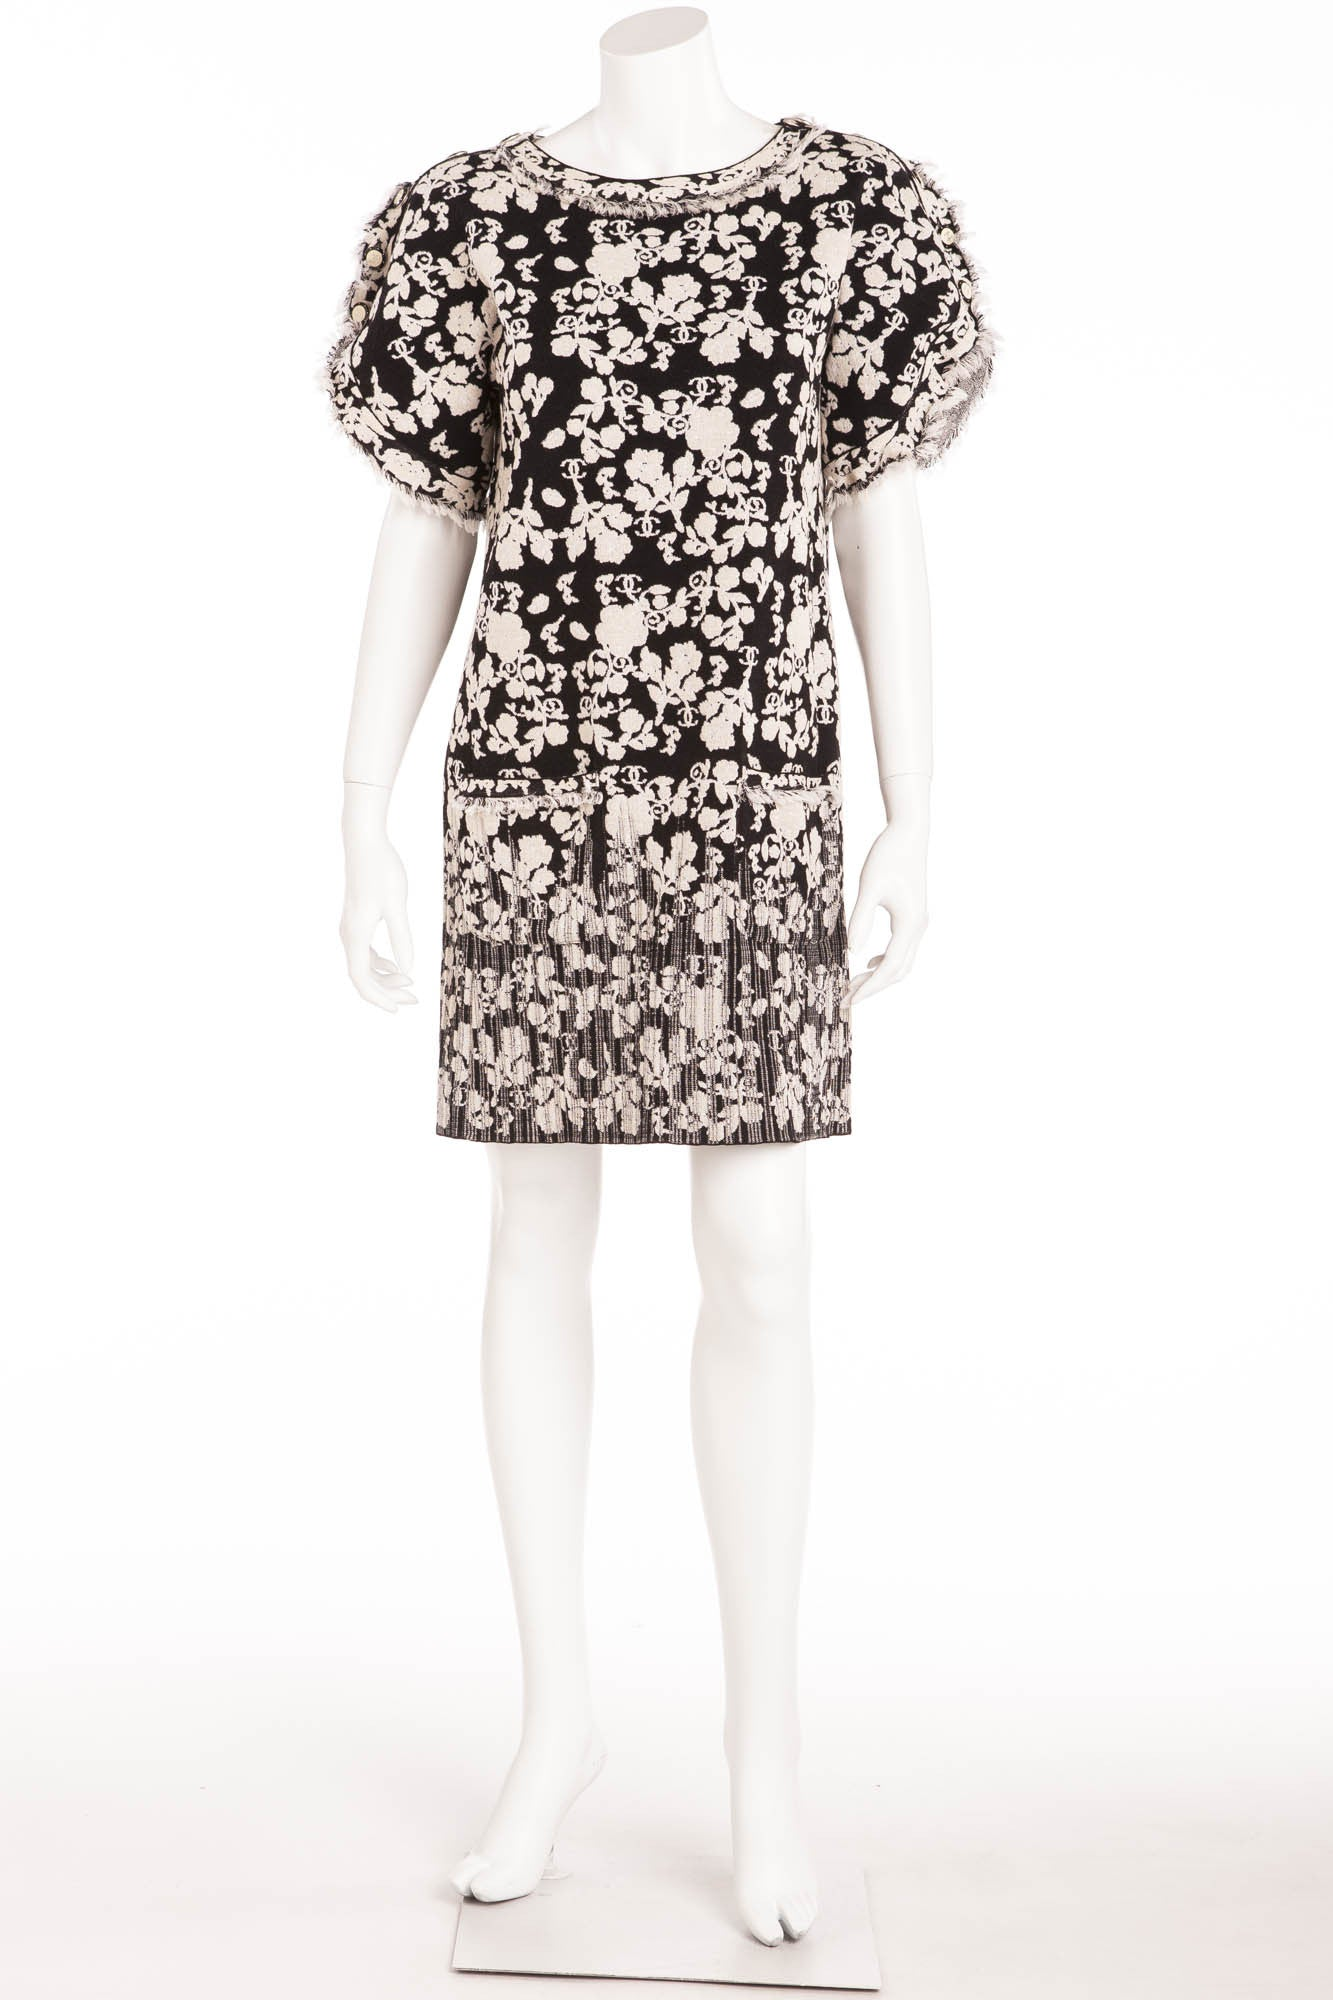 Chanel - White   Black Short Sleeve Floral Patterned Dress - FR 40 – LUXHAVE dc80e8e91